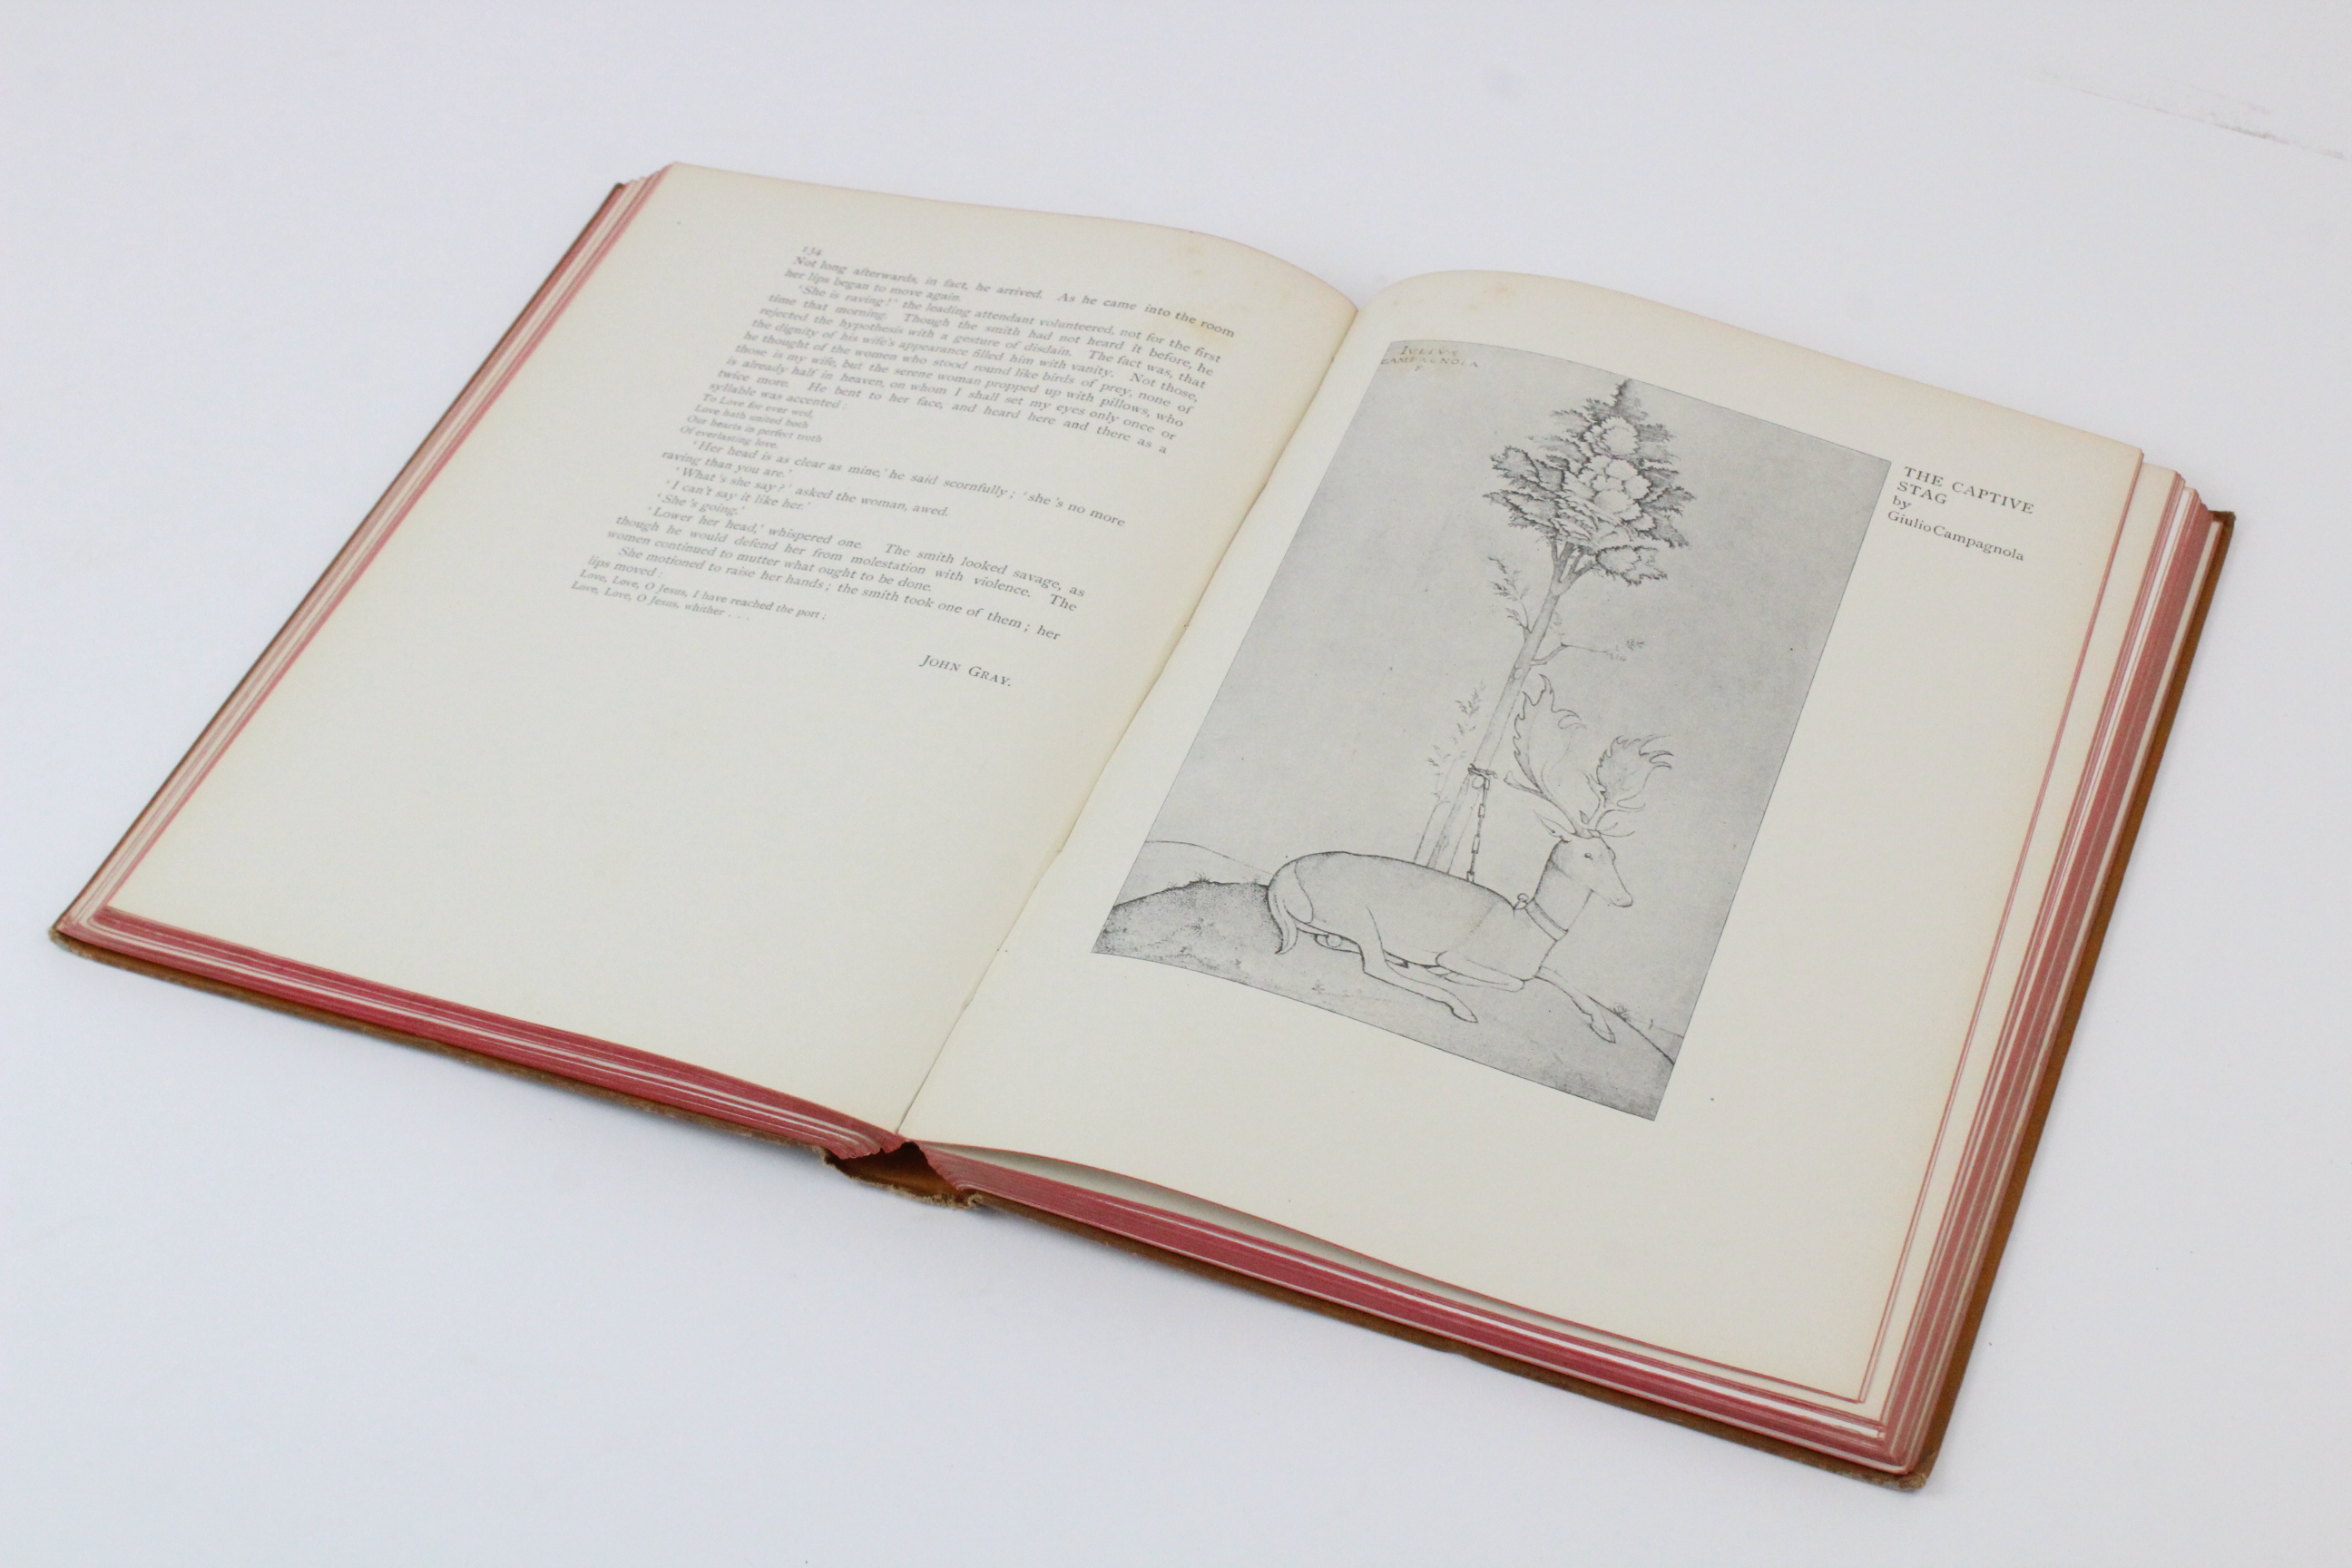 Hazelwood (C) et al, THE PAGEANT, 1897 edition, illustrated red boards, illustrated endpapers, - Image 6 of 16